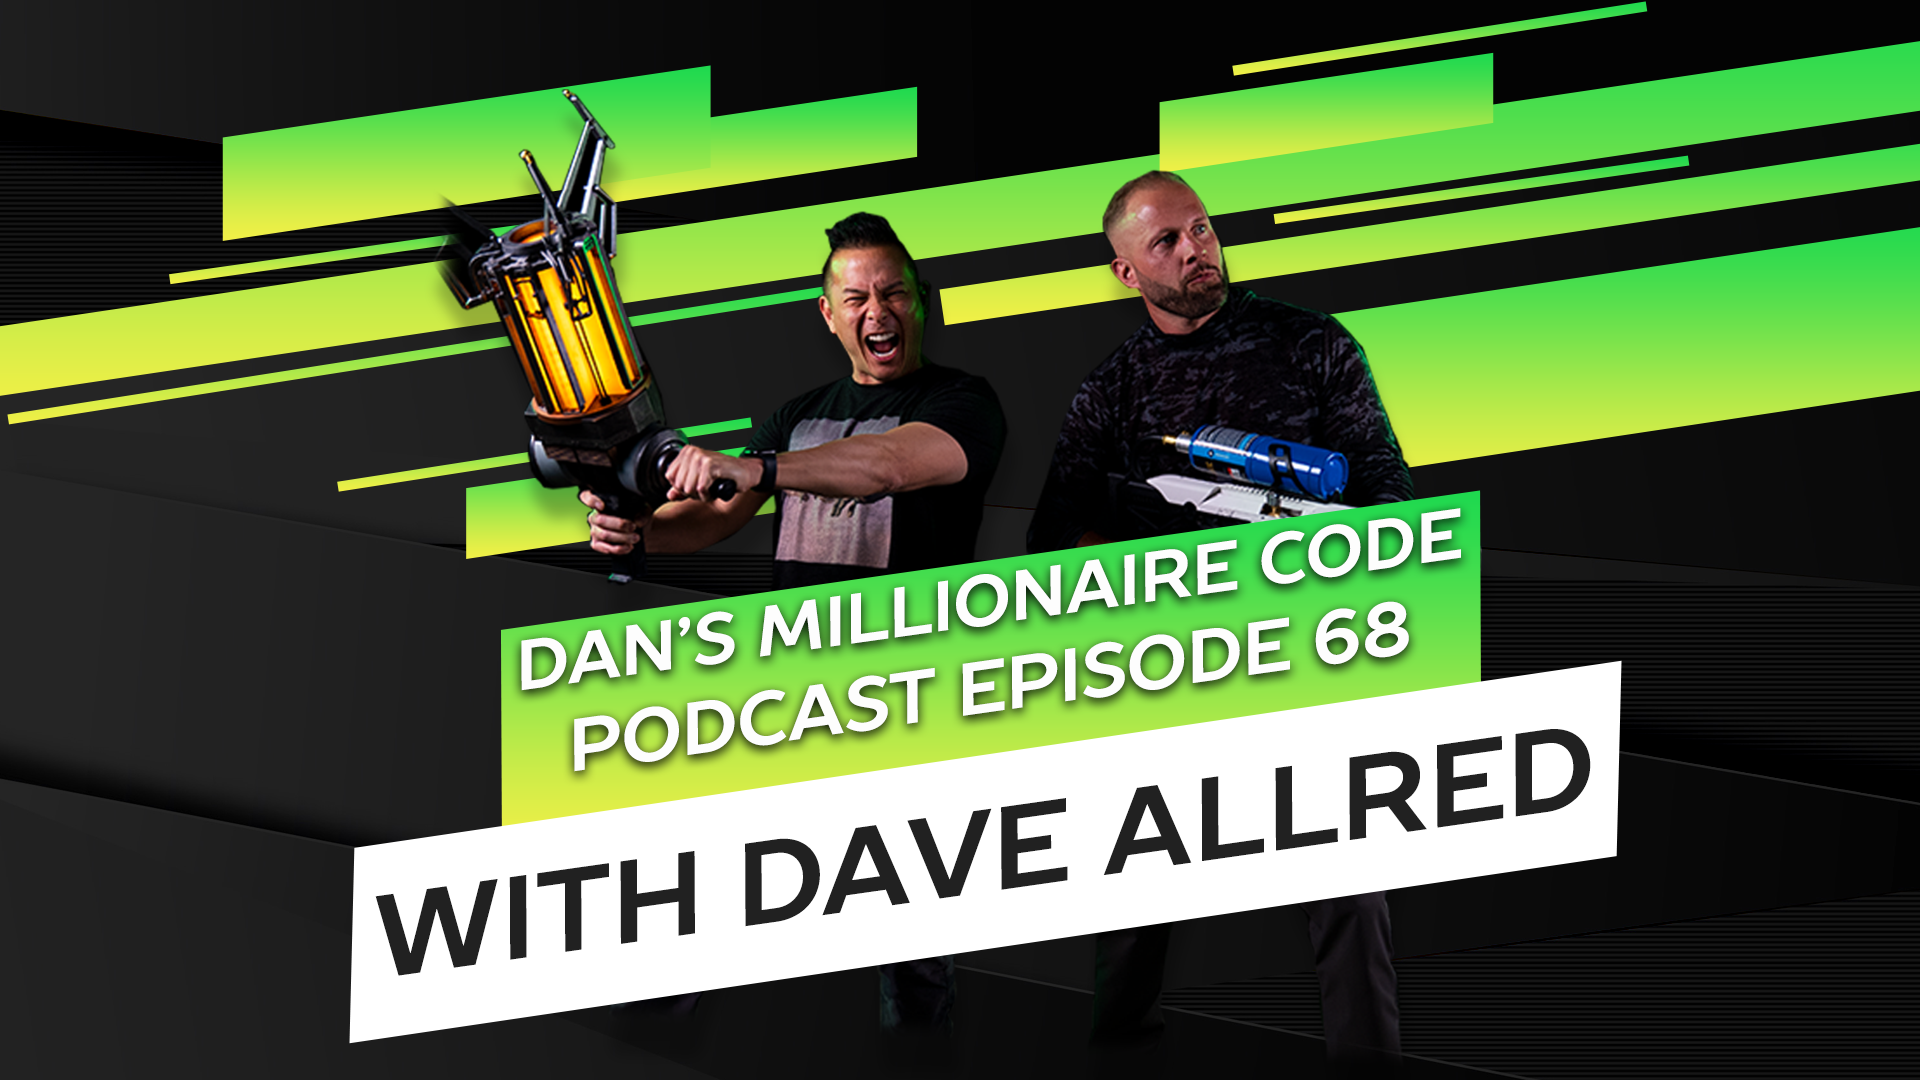 Dan's Millionaire Code: The Podcast Episode 68 with Dave Allred